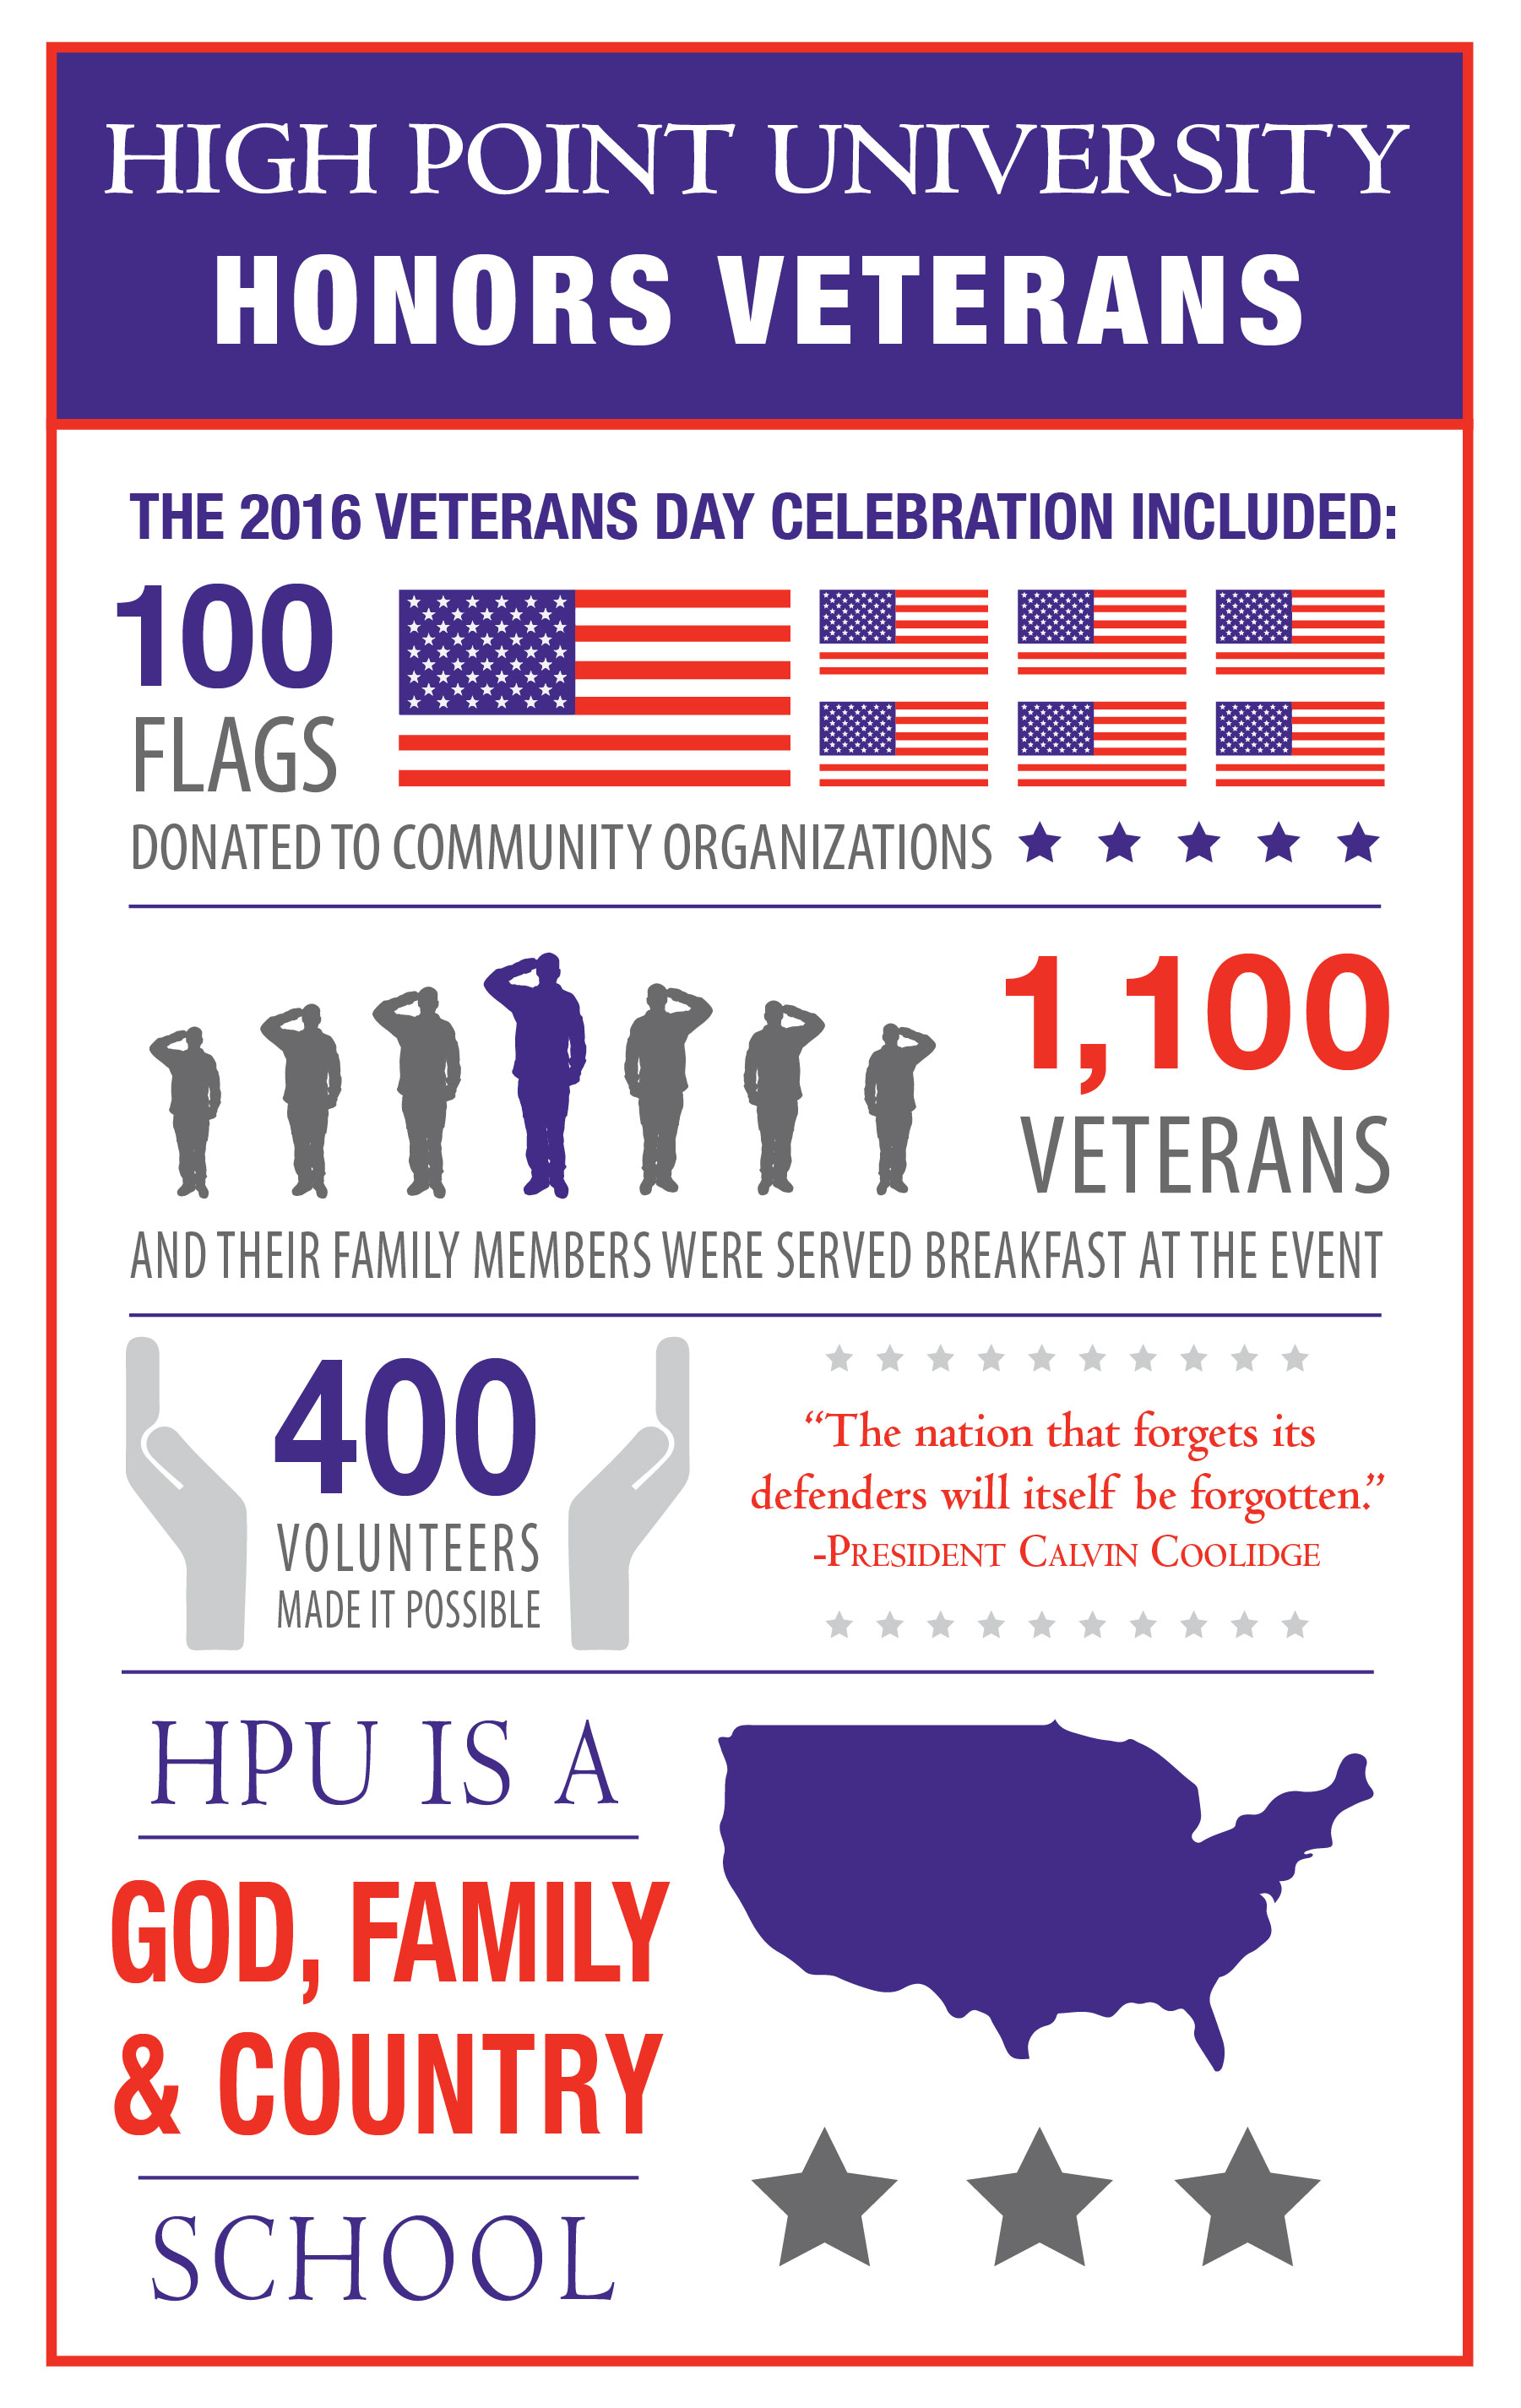 More information from the 2016 Veteran's Day Celebration.